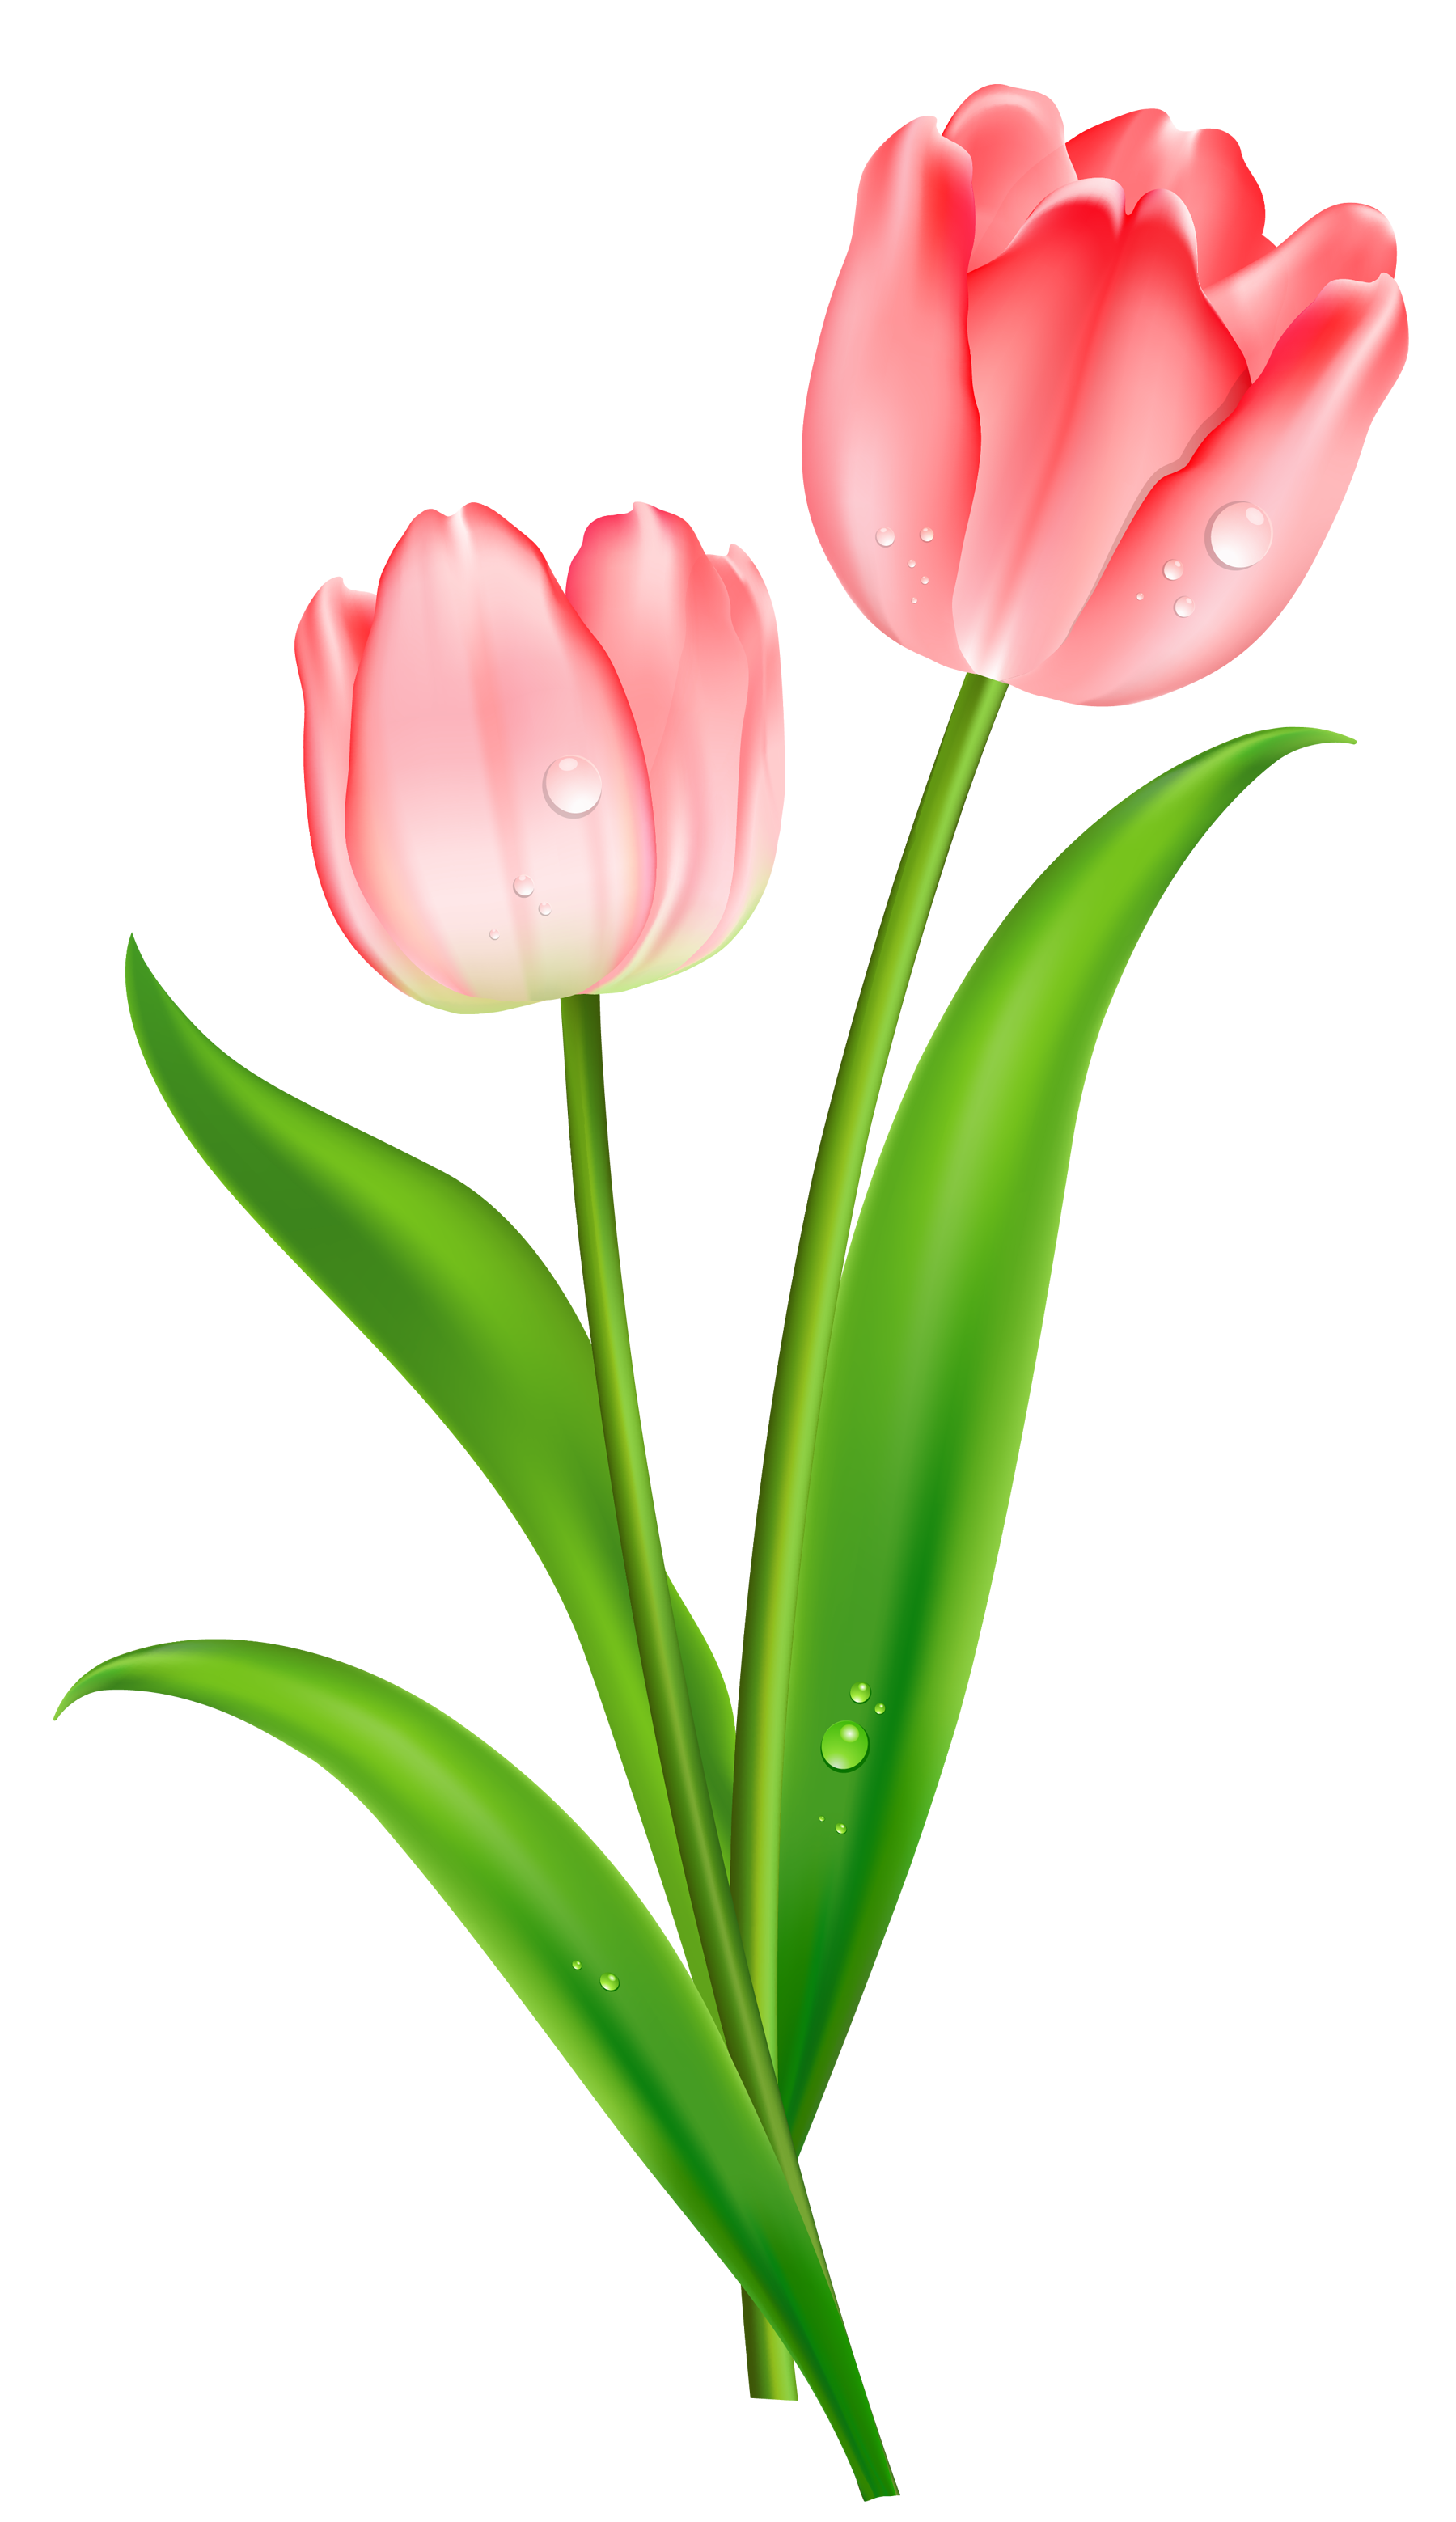 Tulips clipart. Tulip png images free